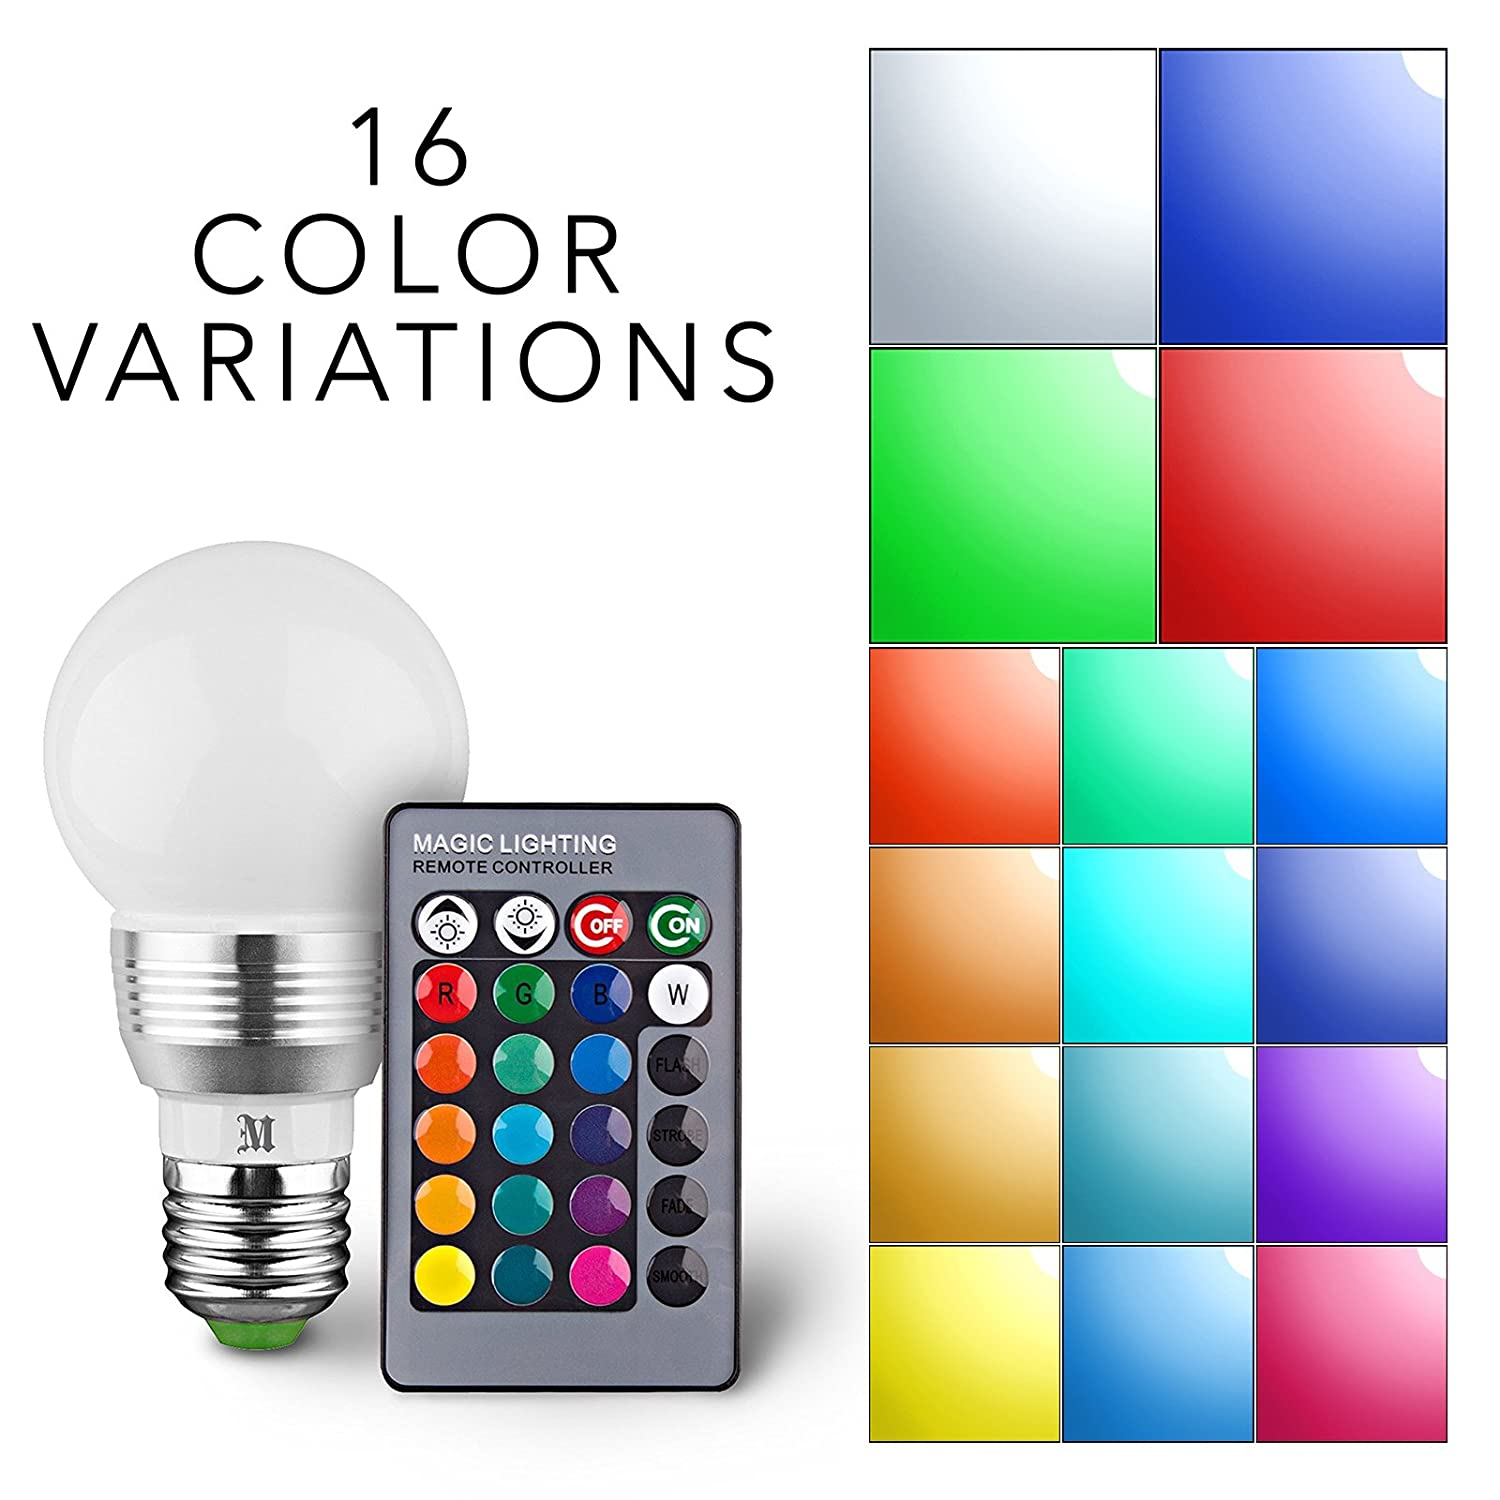 Kobra Retro Led Color Changing Light Bulb With Remote Control 16 Colour They Emit During Normal Operation A Basic Sensor Can Be Different Choices Smooth Flash Or Strobe Mode Premium Quality Energy Saving